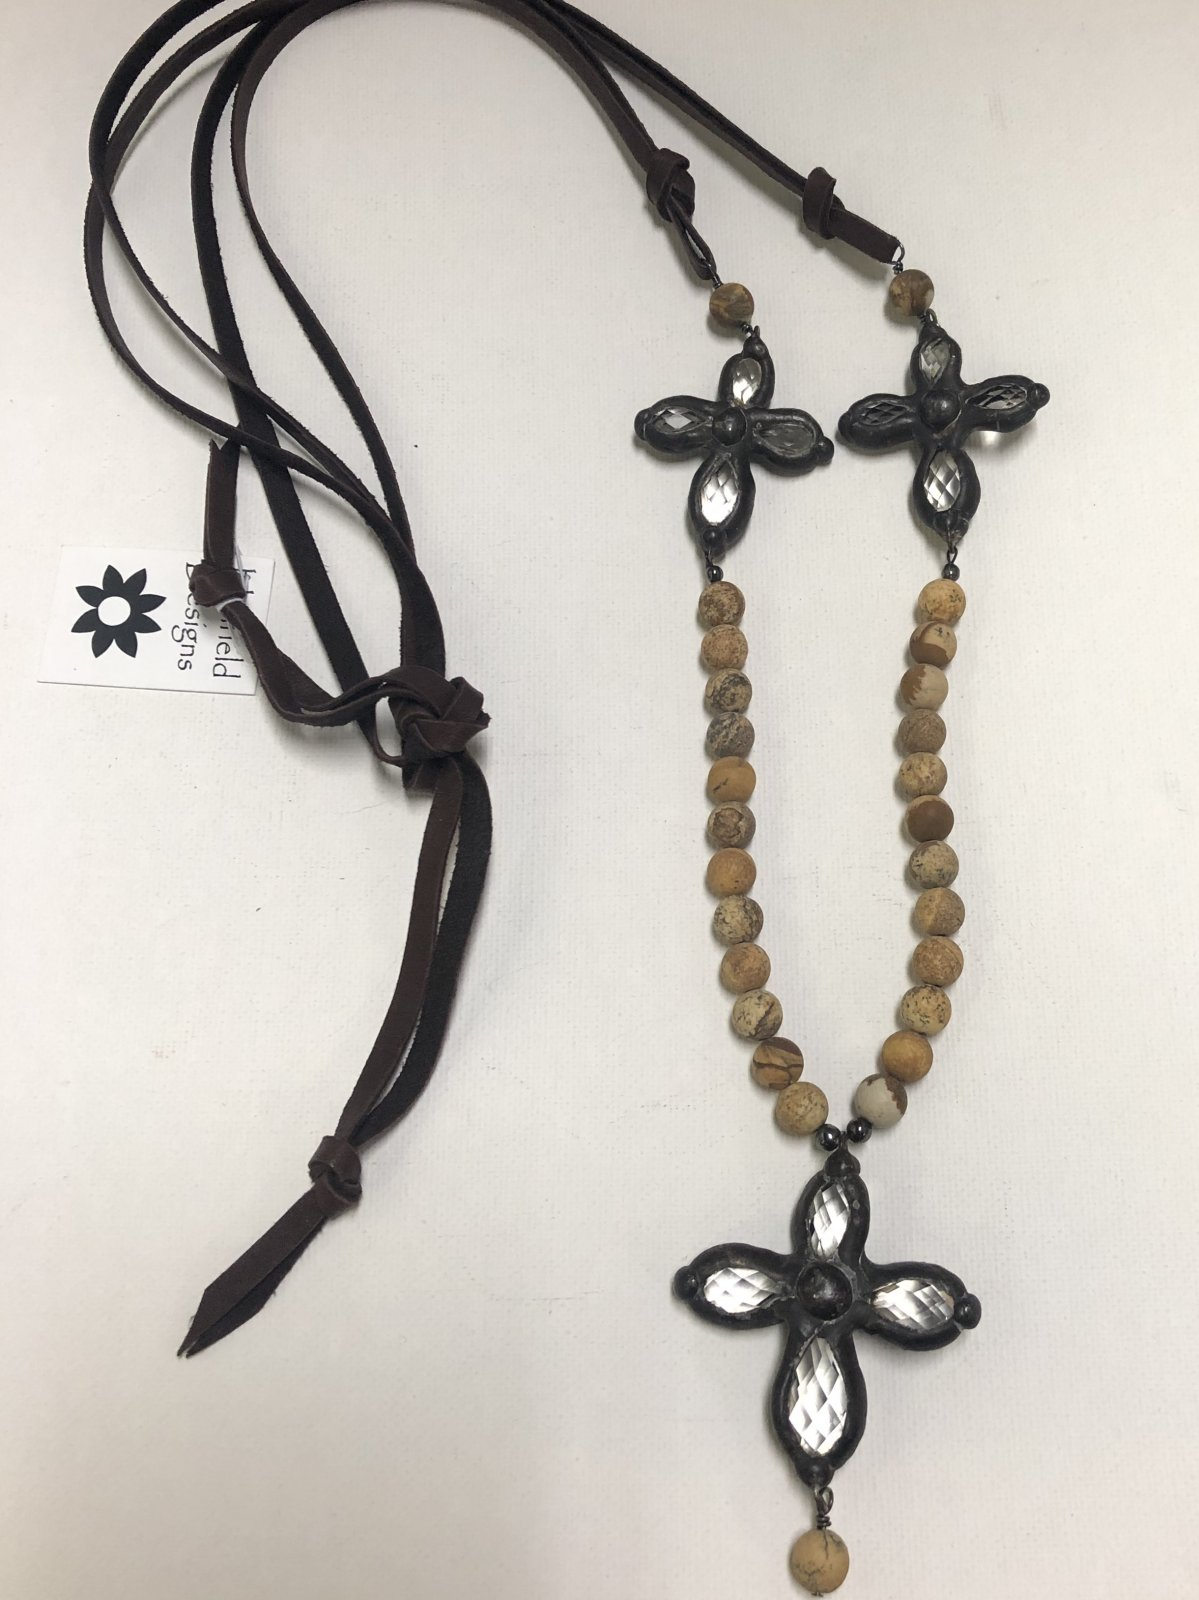 Leather and Neutral Bead Necklace with Cross 0566